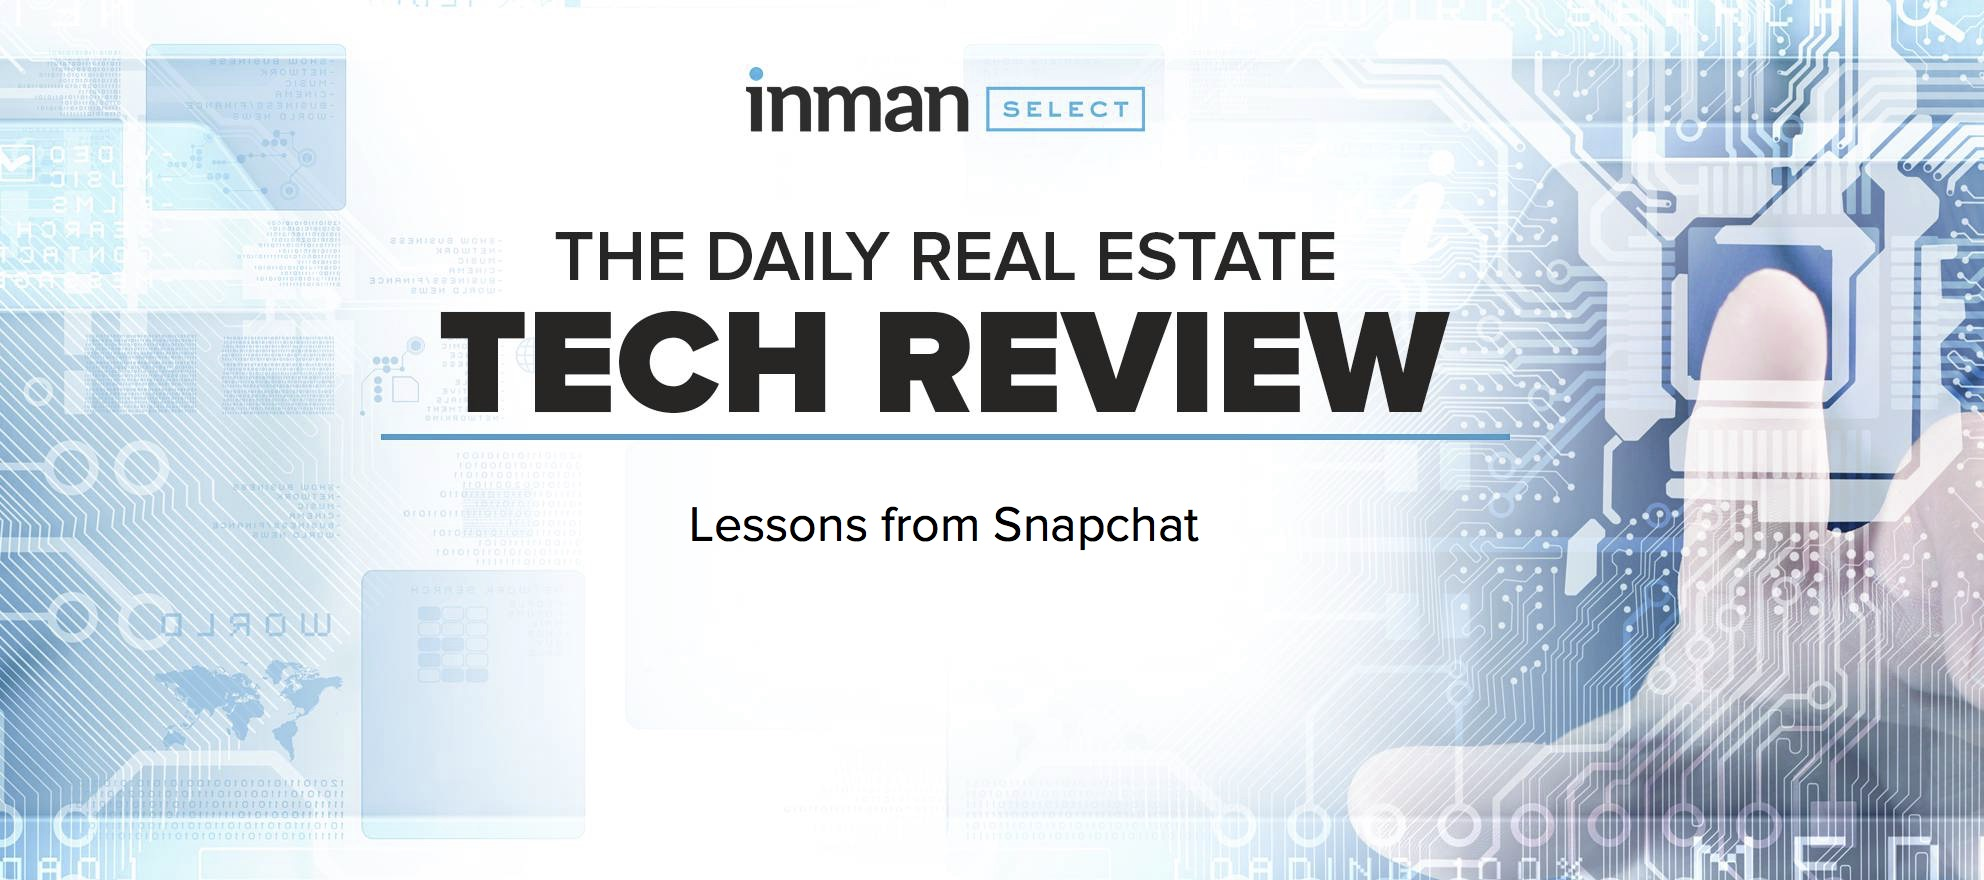 Snapchat's business moves hold powerful marketing lesson for real estate